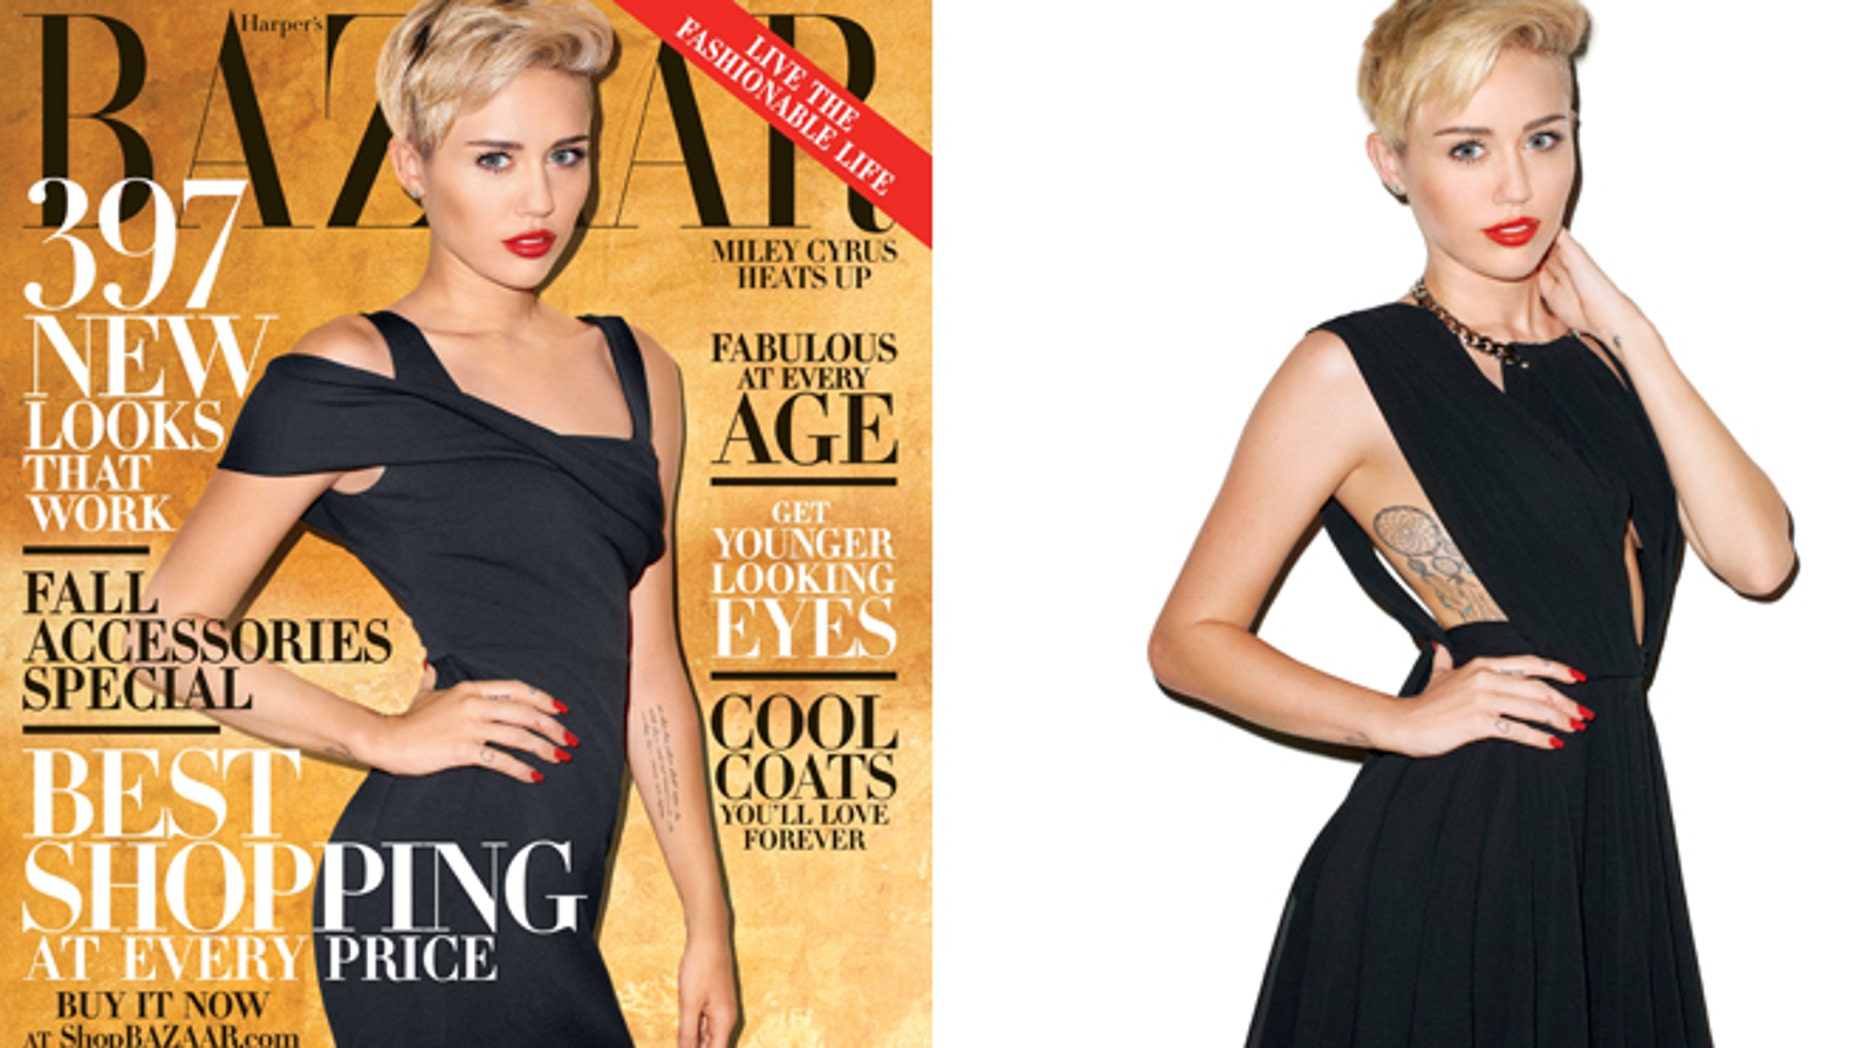 Miley Cyrus graces the cover of Harper's Bazaar, on newstands Sept. 24, 2013.